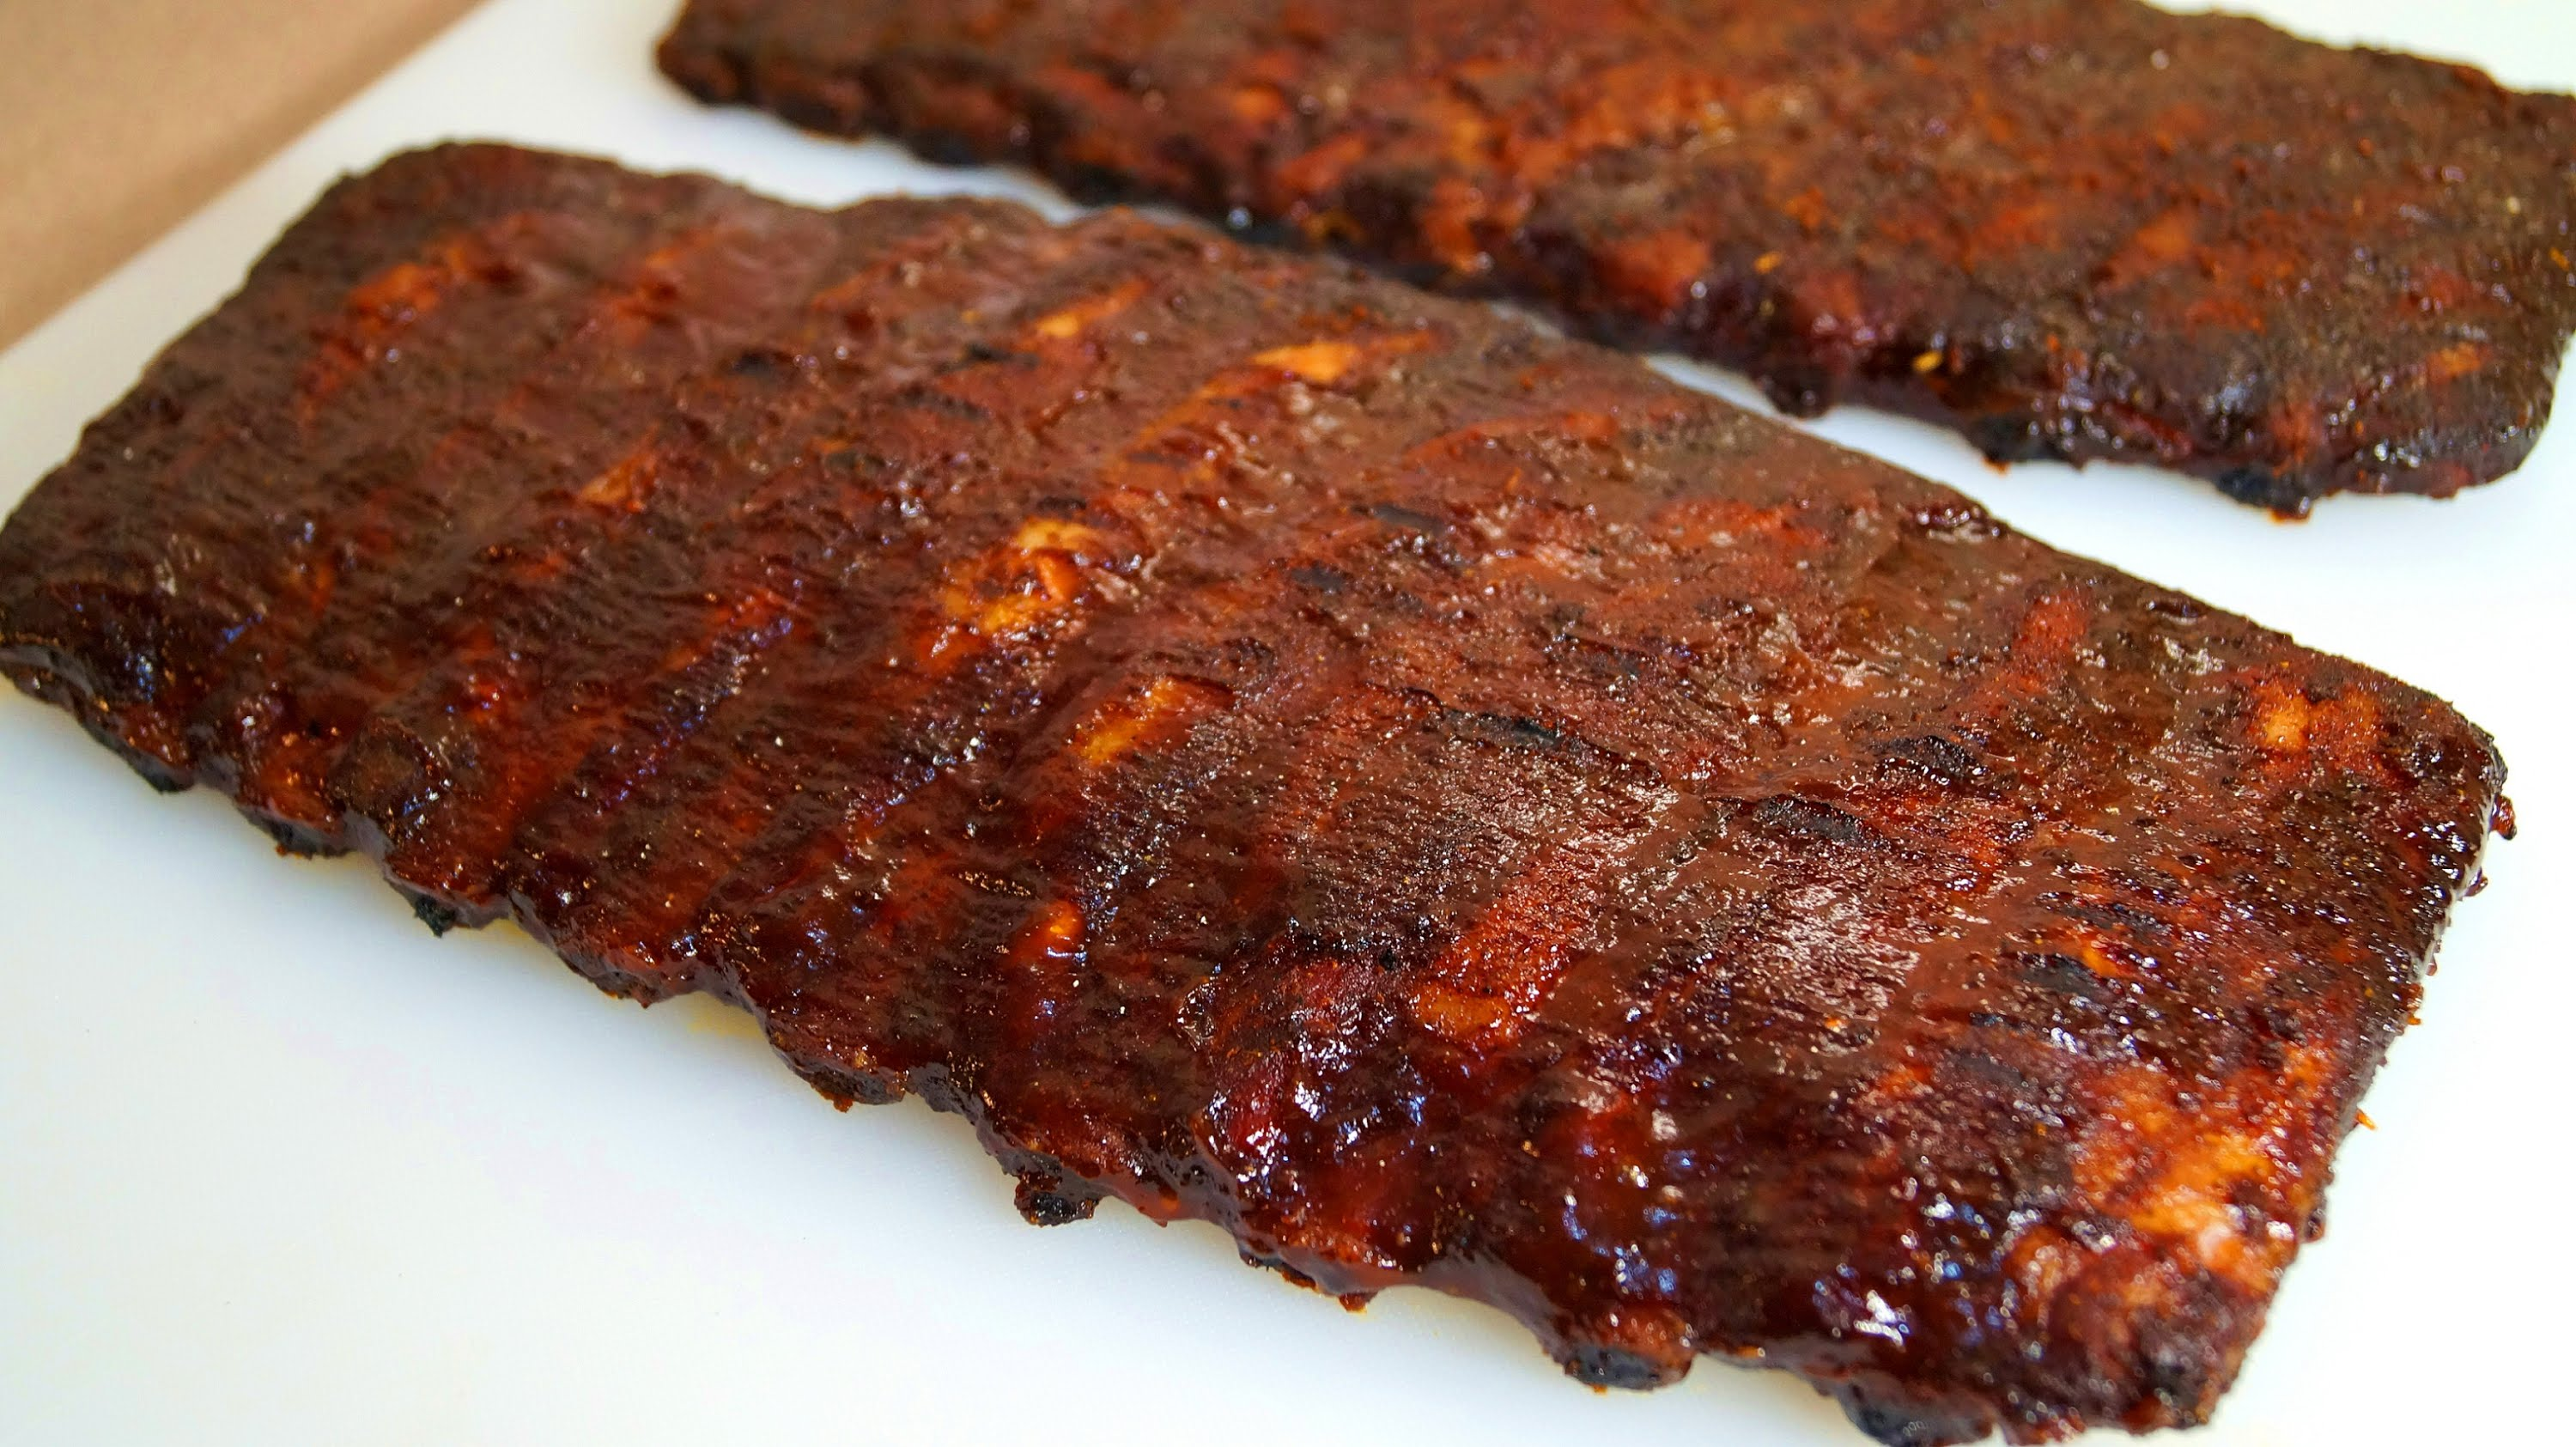 4th july specials last meal ribs i love grill - Ribs on the grill recipe ...